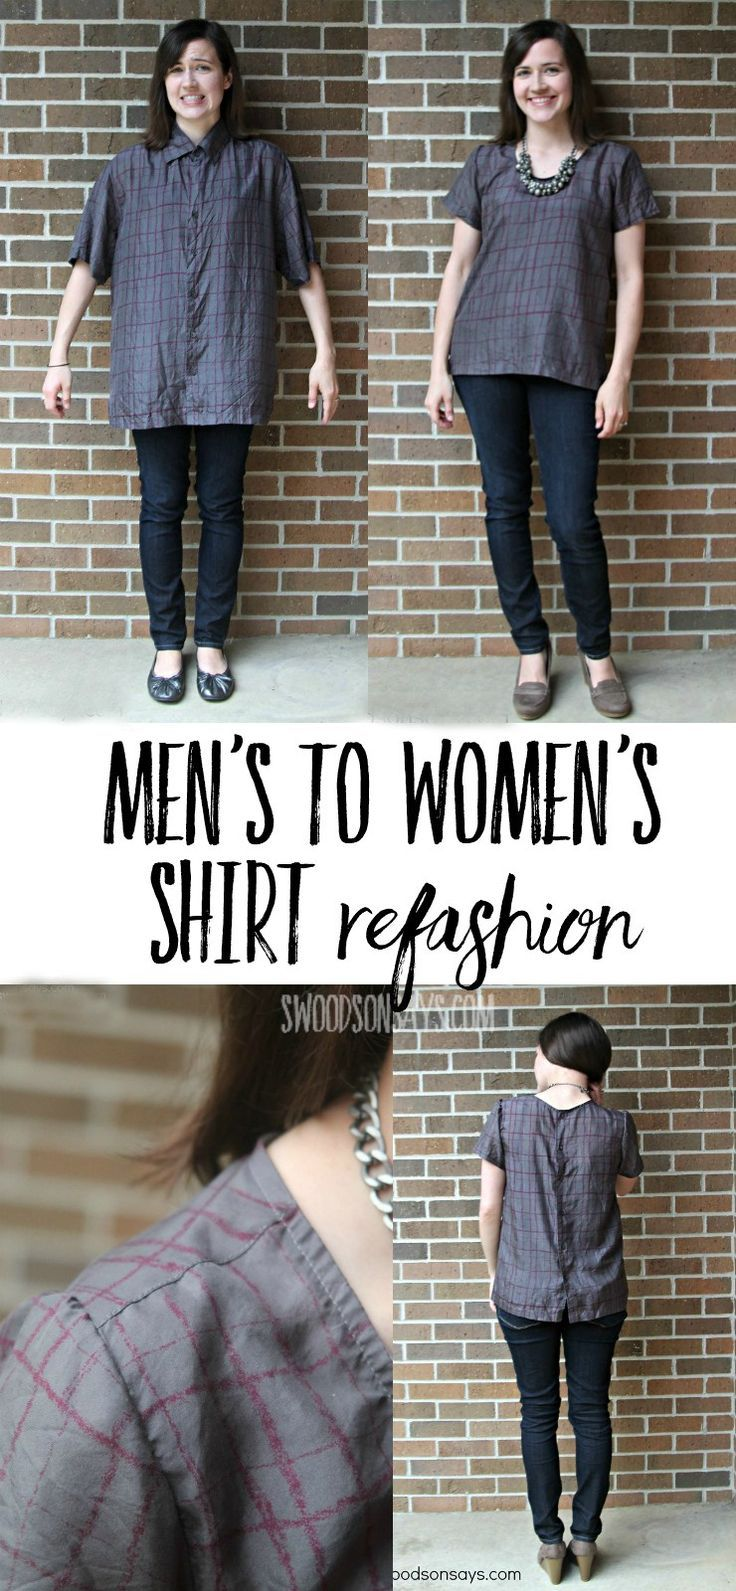 Unique Men's Shirt to women's shirt refashion from Swoodson Says - get inspired for how to turn a baggy mens shirt into a chic women's top! This creative refashion upcycles a button up shirt with a few simple steps. Using the Grainline Scout Tee pdf pattern.  #refashion